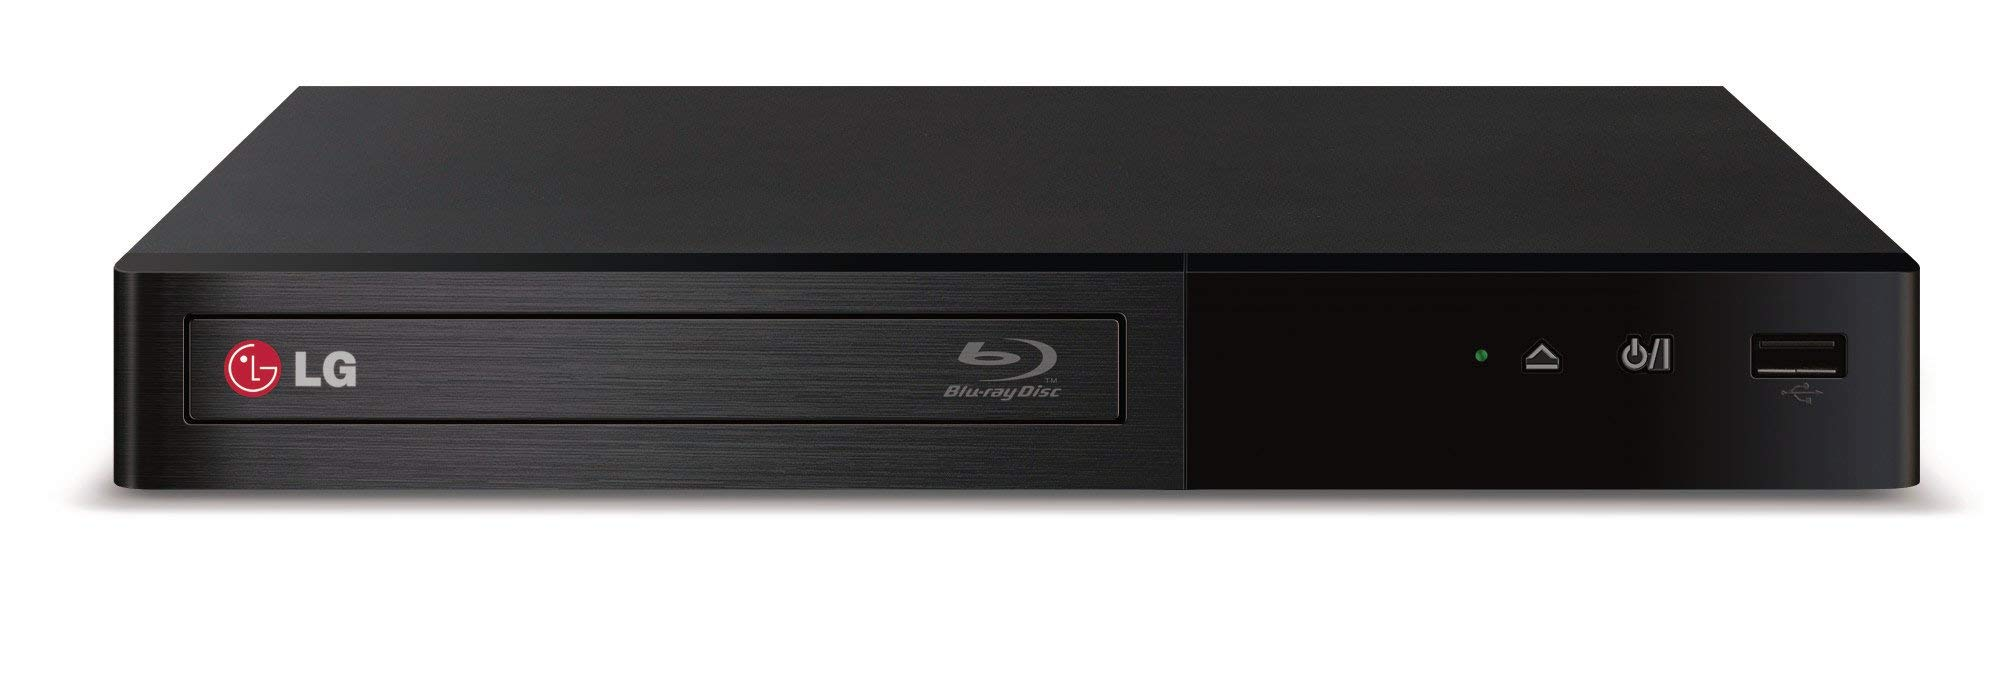 LG Electronics BP340 Blu-Ray Disc Player with Built-in Wi-Fi (2014 Model) (Renewed) by LG